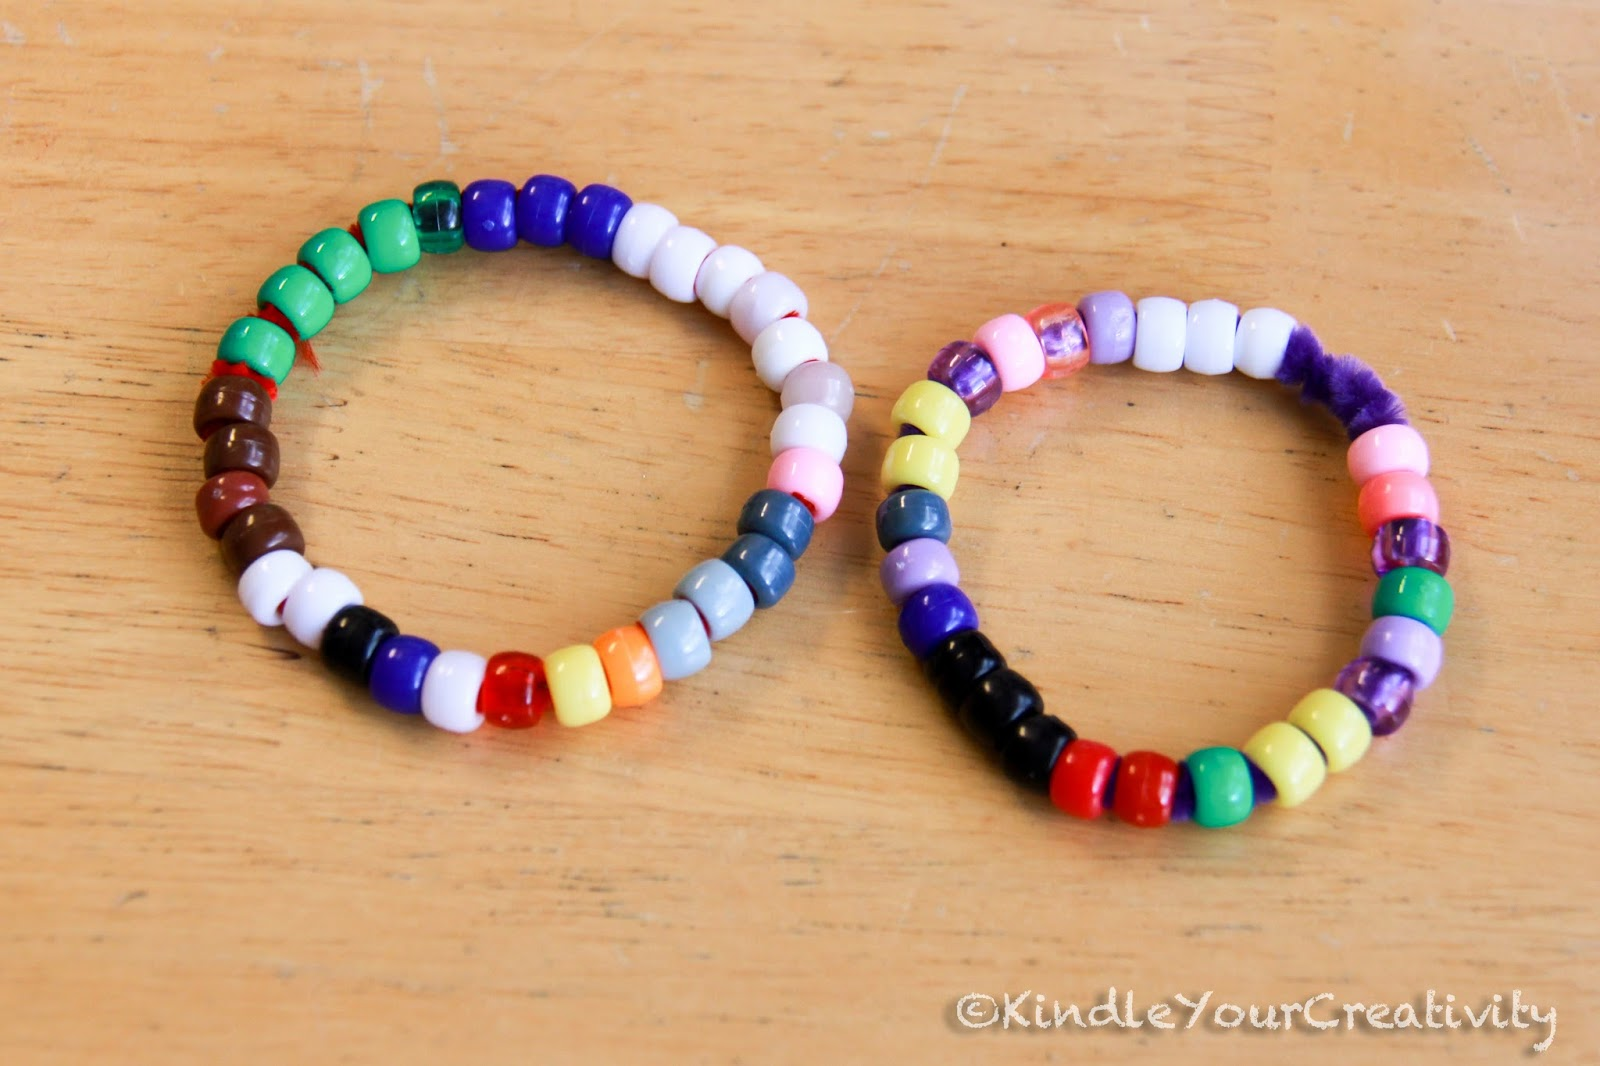 Kindle Your Creativity: Bead Bracelet